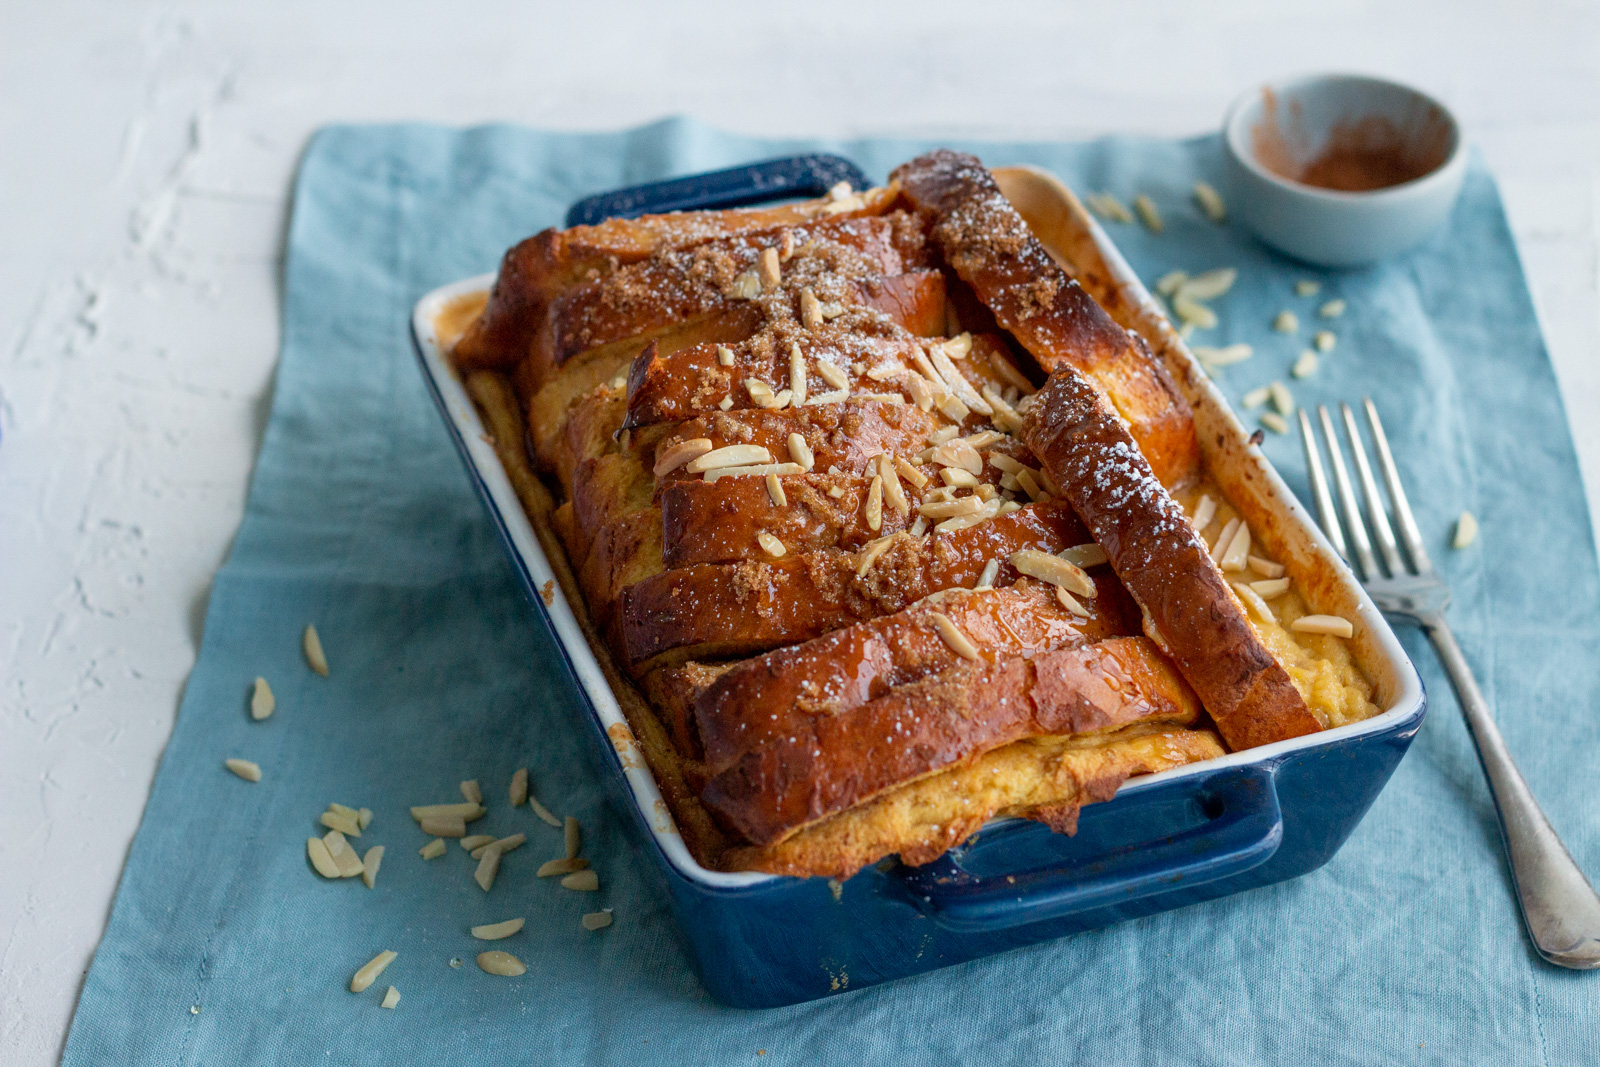 An overnight french toast bake made using brioche bread is placed in a dark blue tray with sliced almonds top. The tray is kept on a blue napkin, and there is a fork on the right with a small blue bowl of cinnamon at the back.